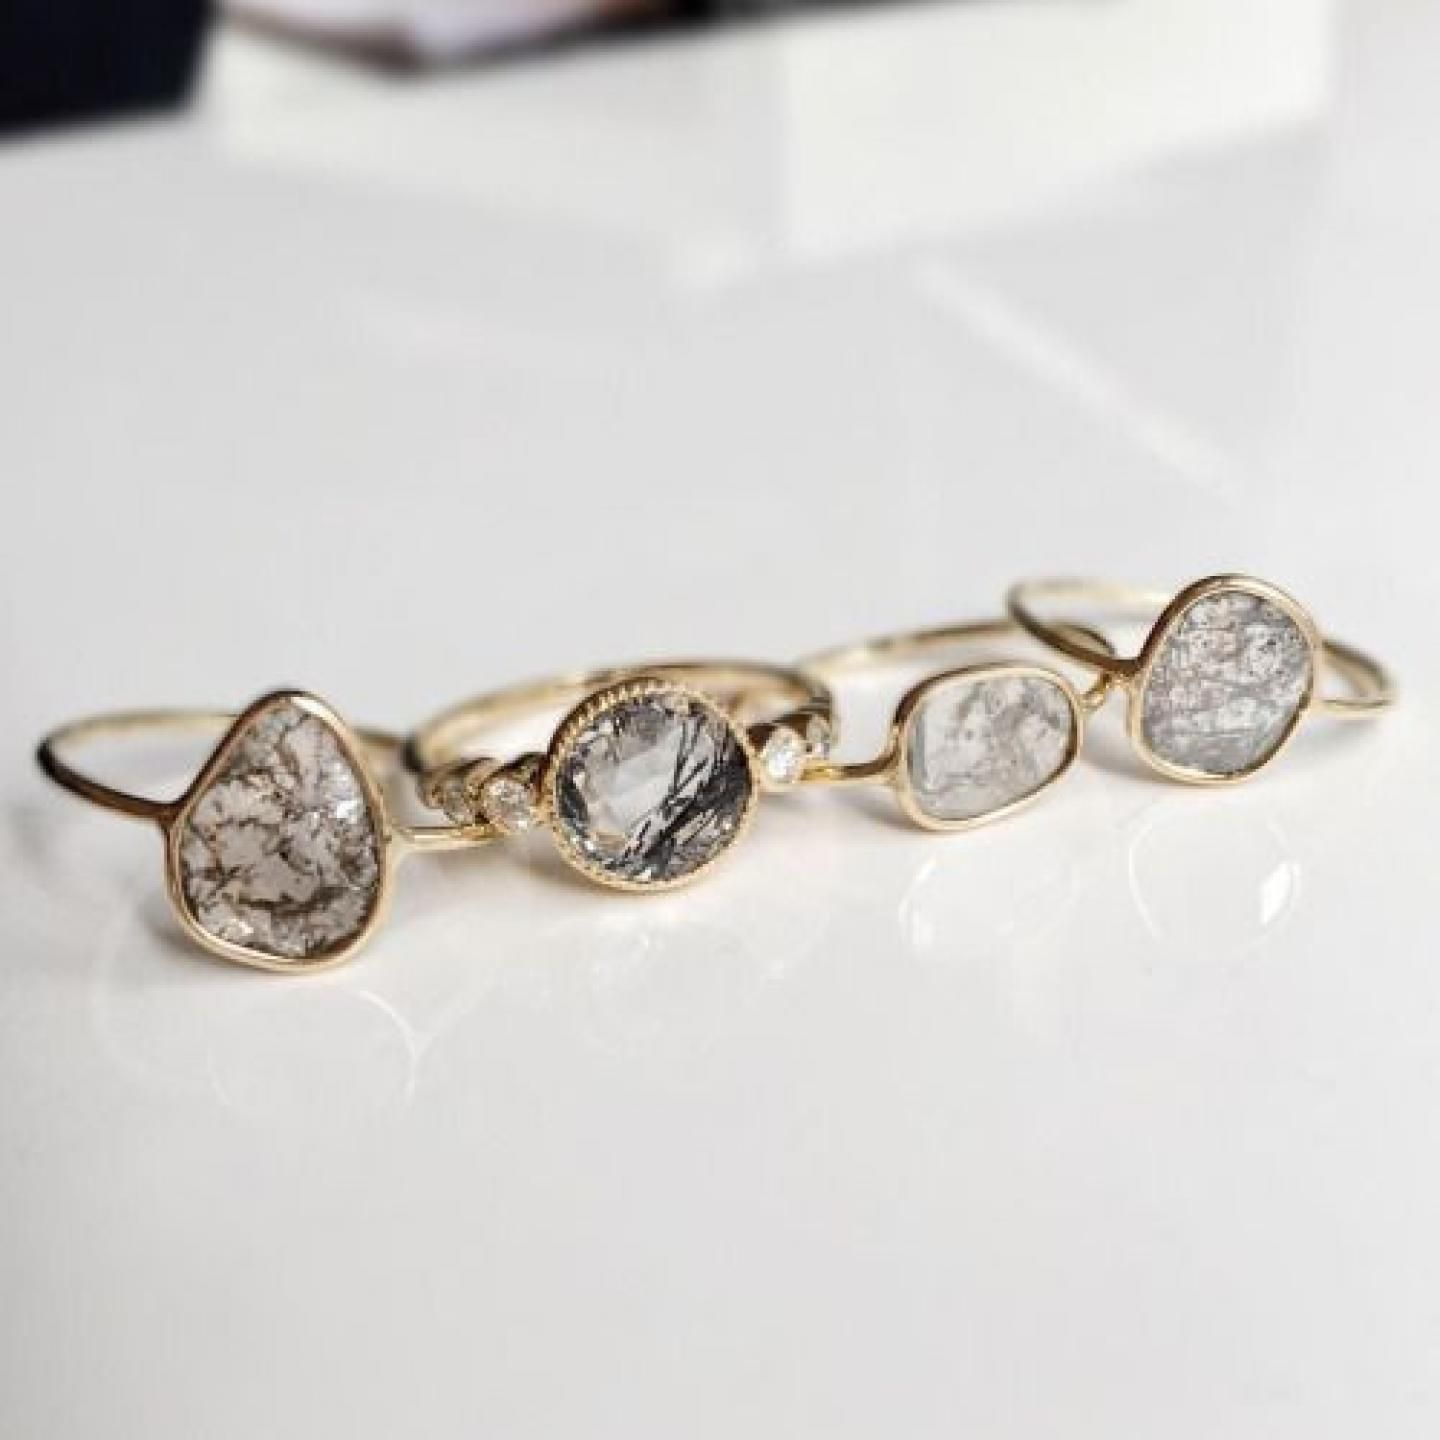 en fallon tier slice pave rhodium gold rings